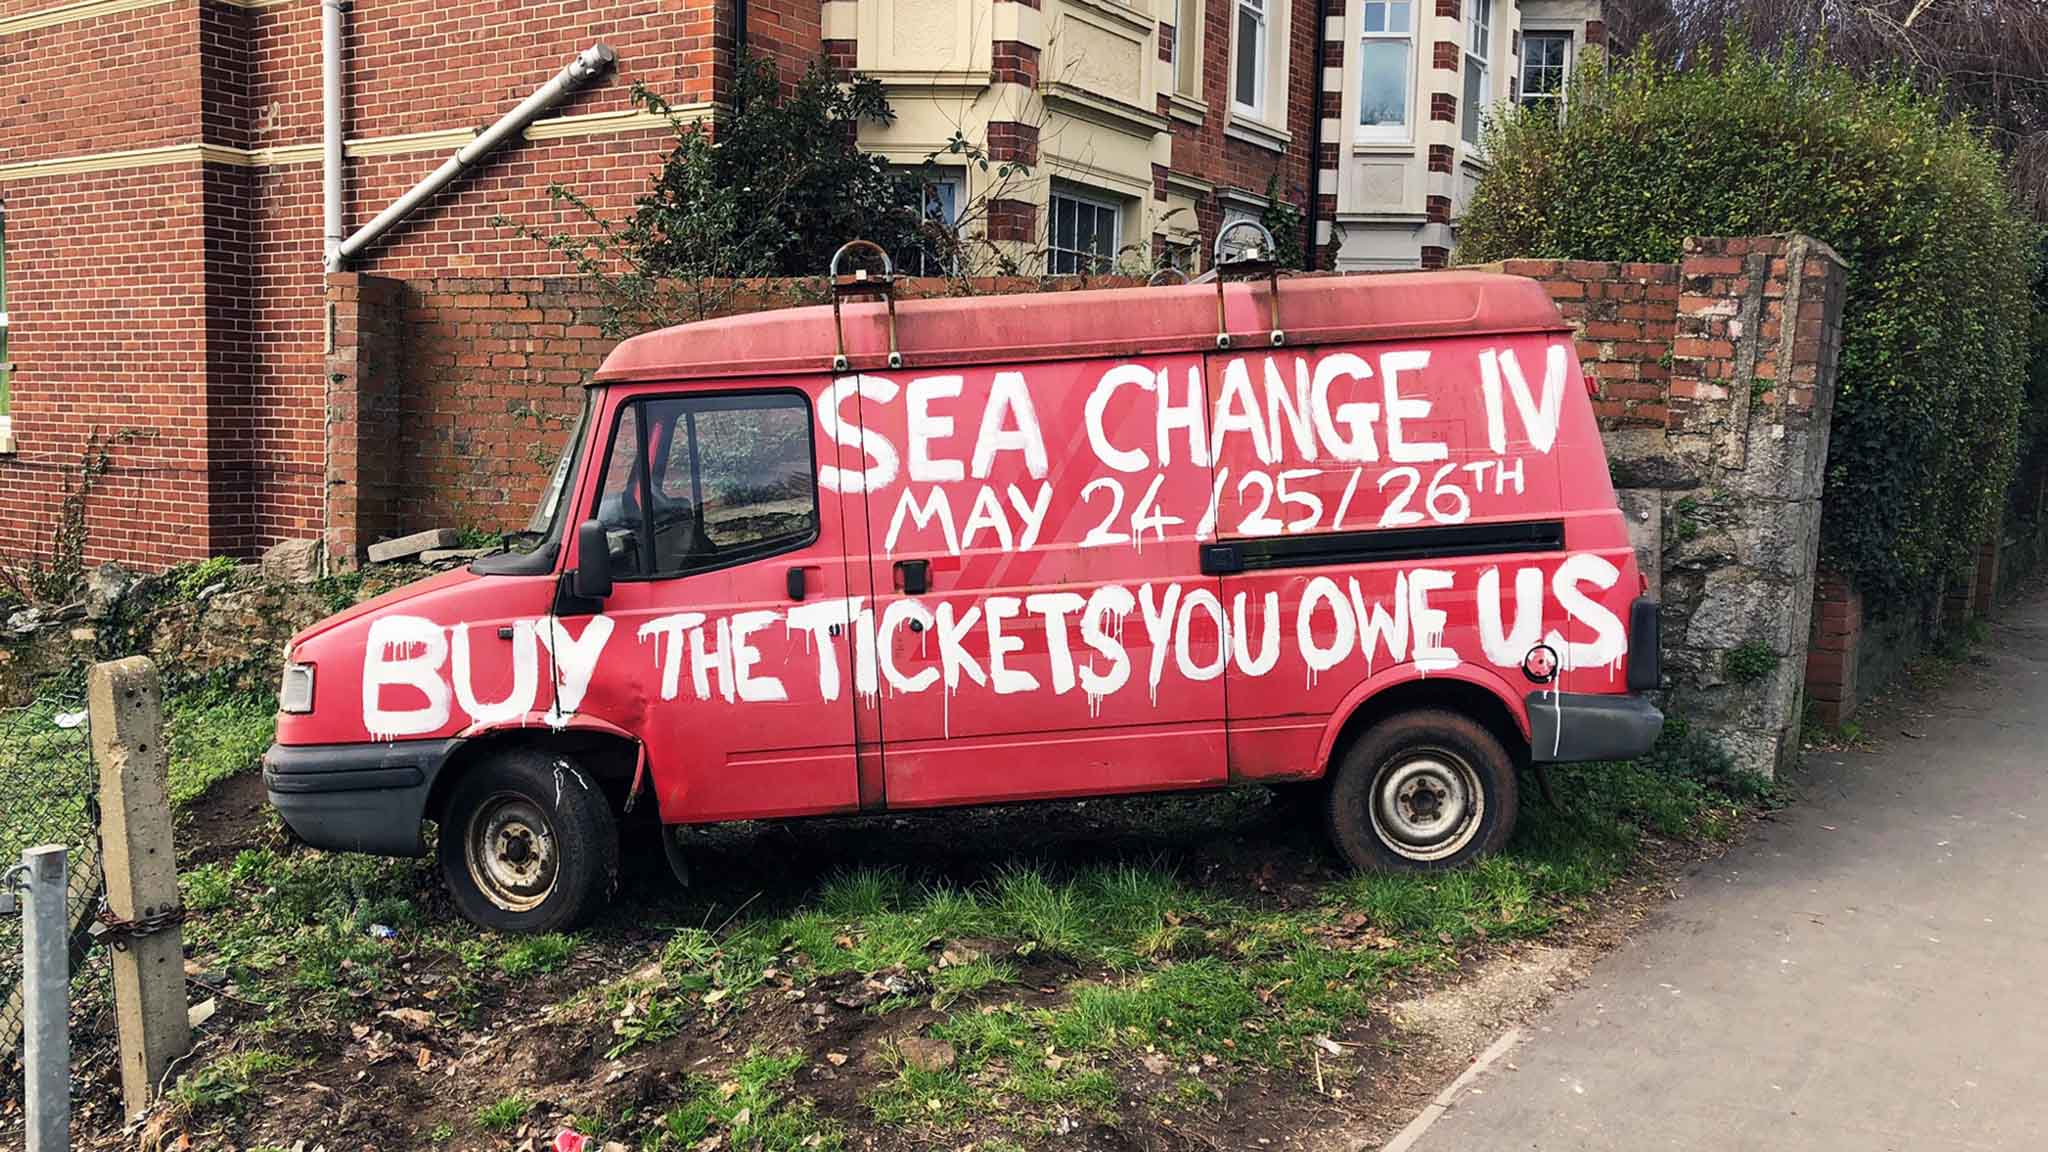 Sea Change's tribute references both Totnes's famous van and an album by festival headliners Metronomy